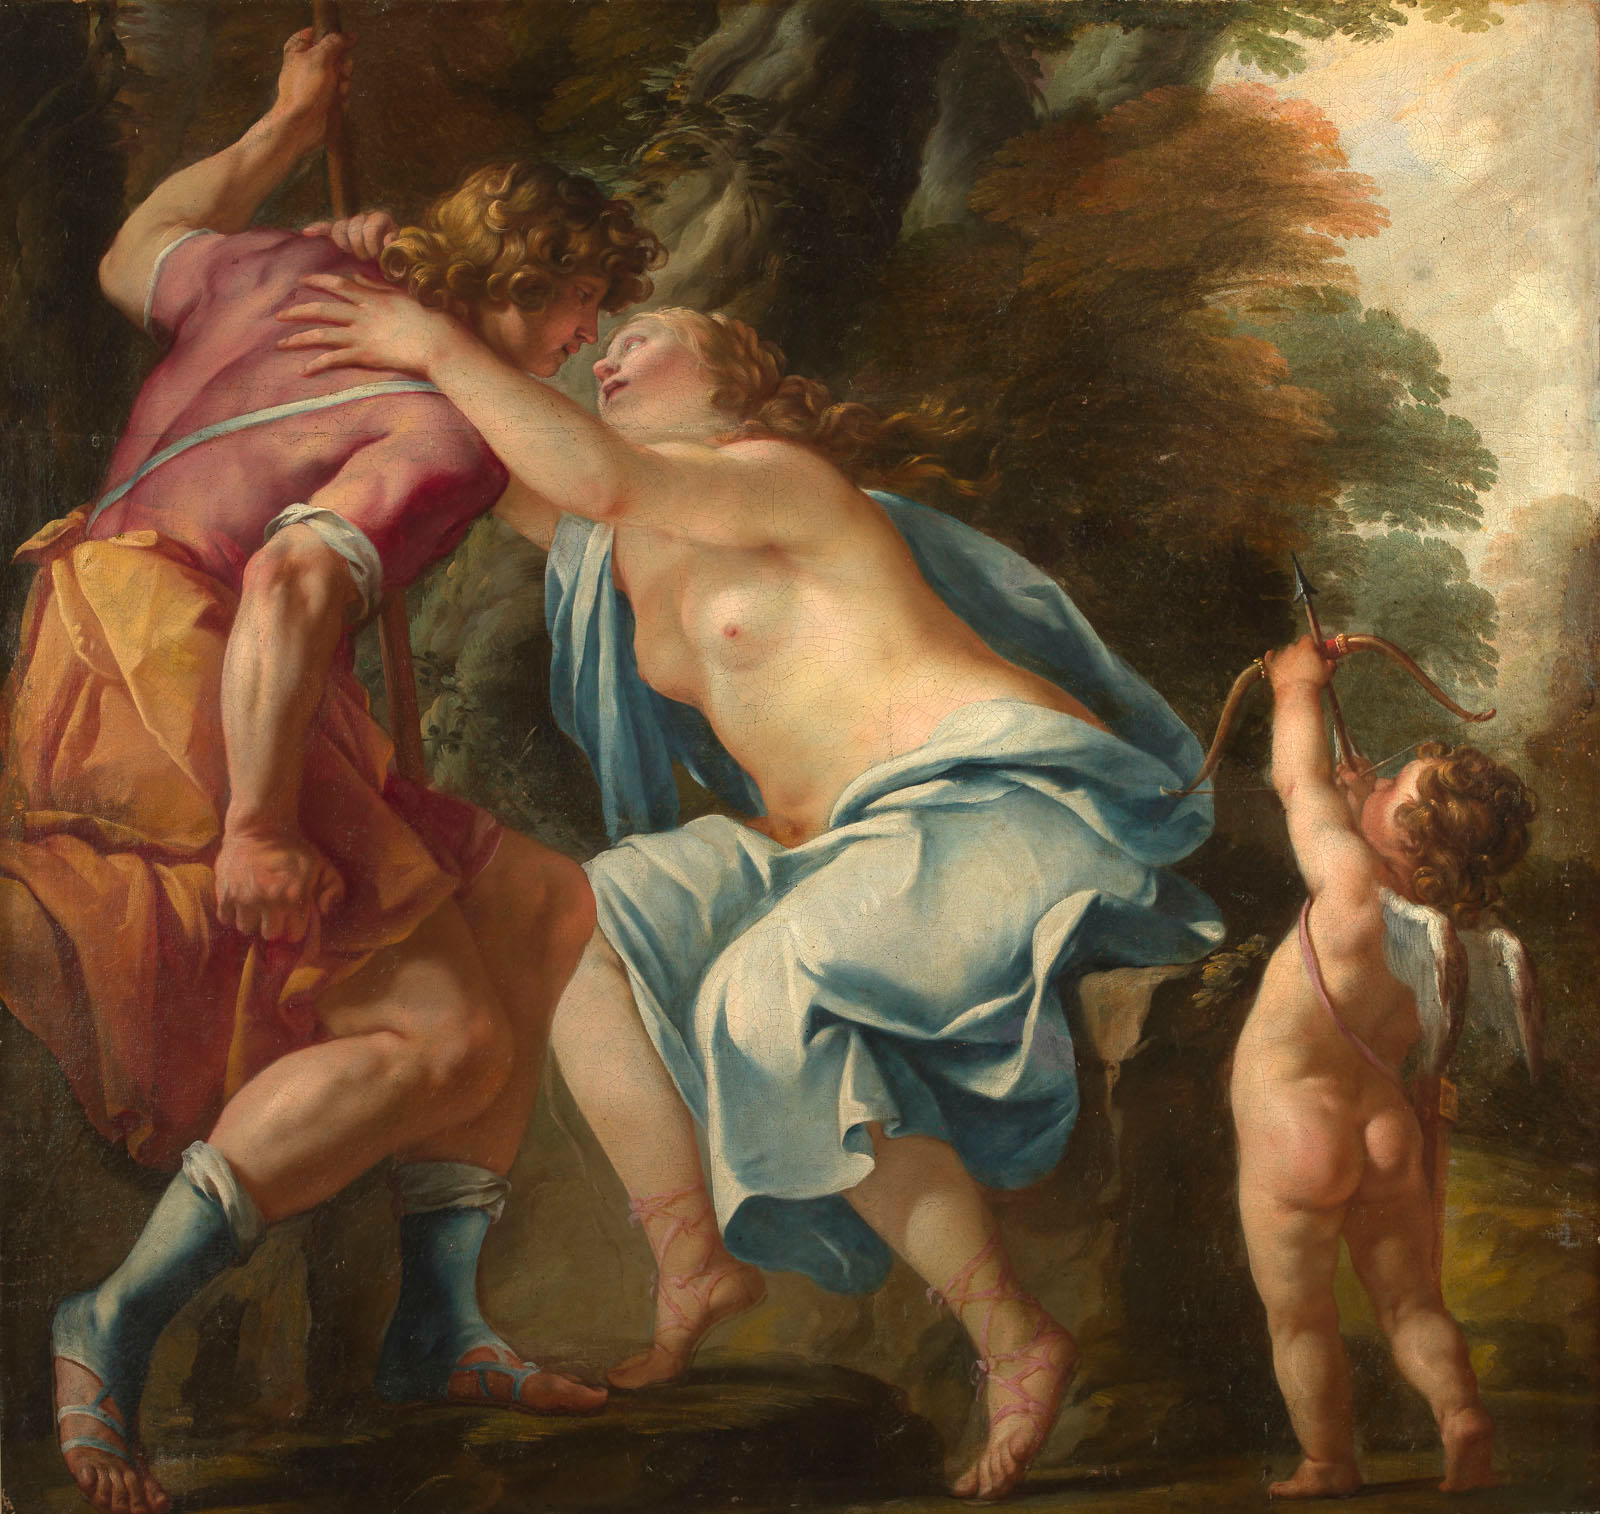 Blanchard Venus and Adonis